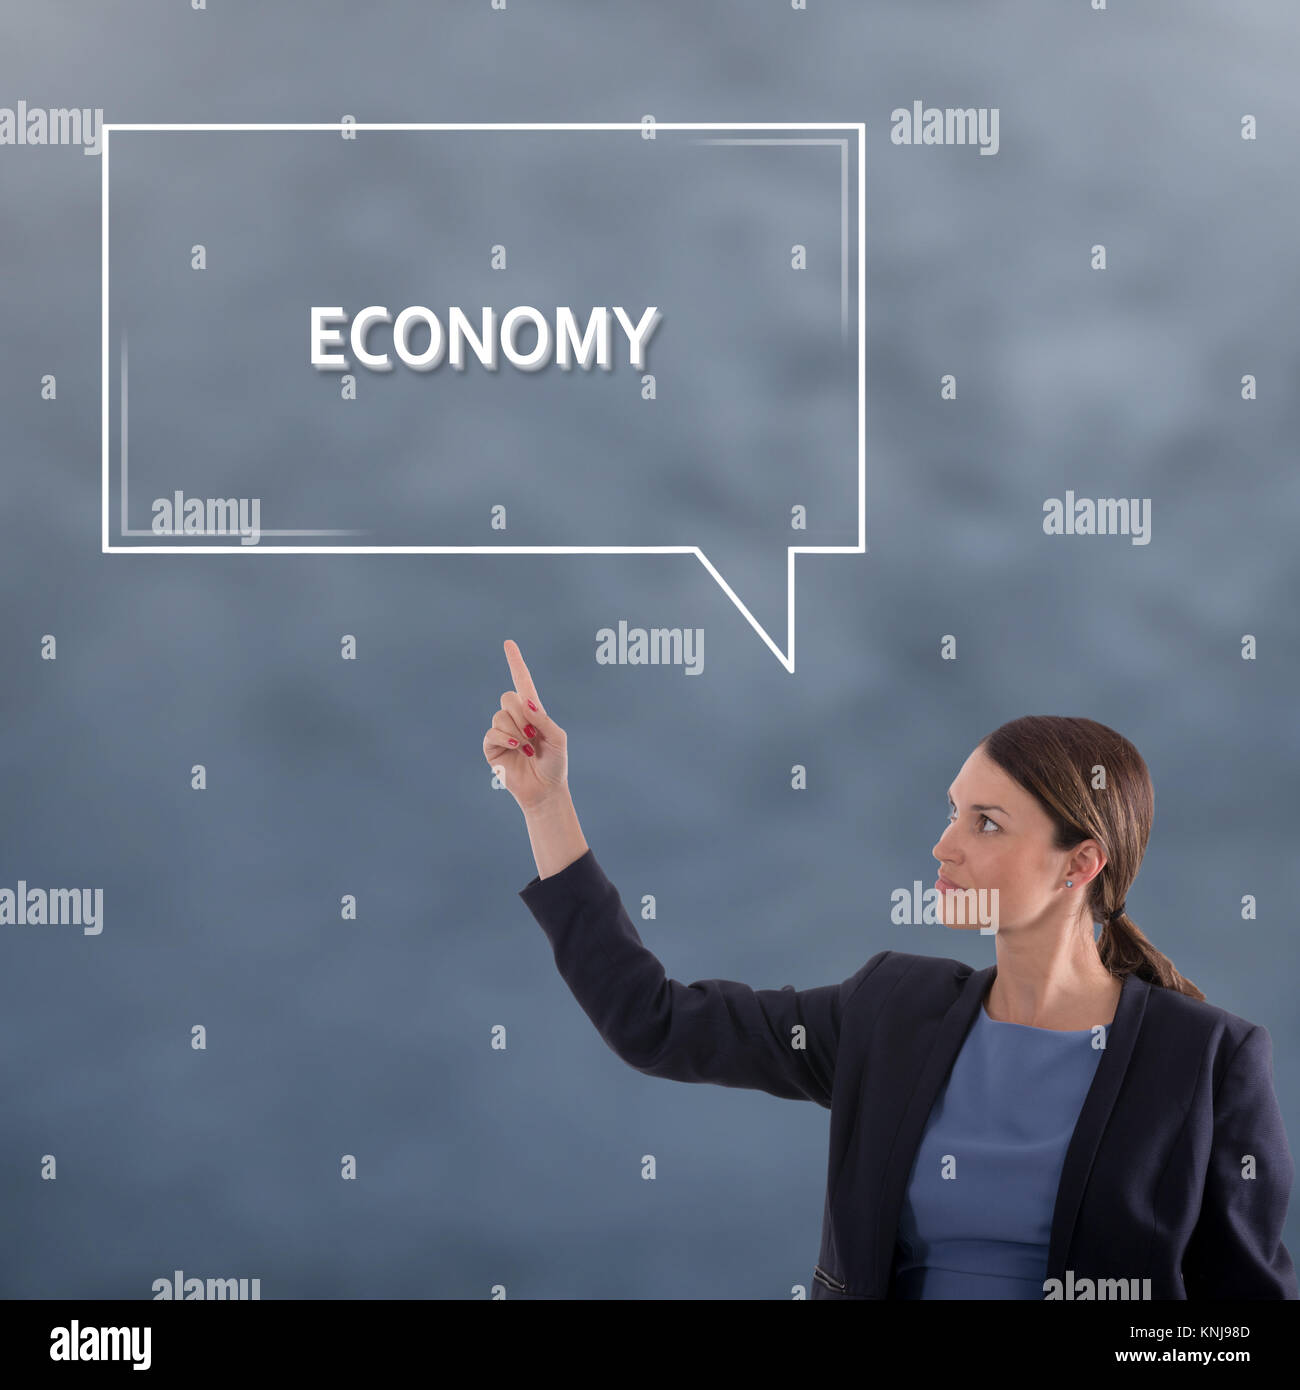 ECONOMY Business Concept. Business Woman Graphic Concept - Stock Image